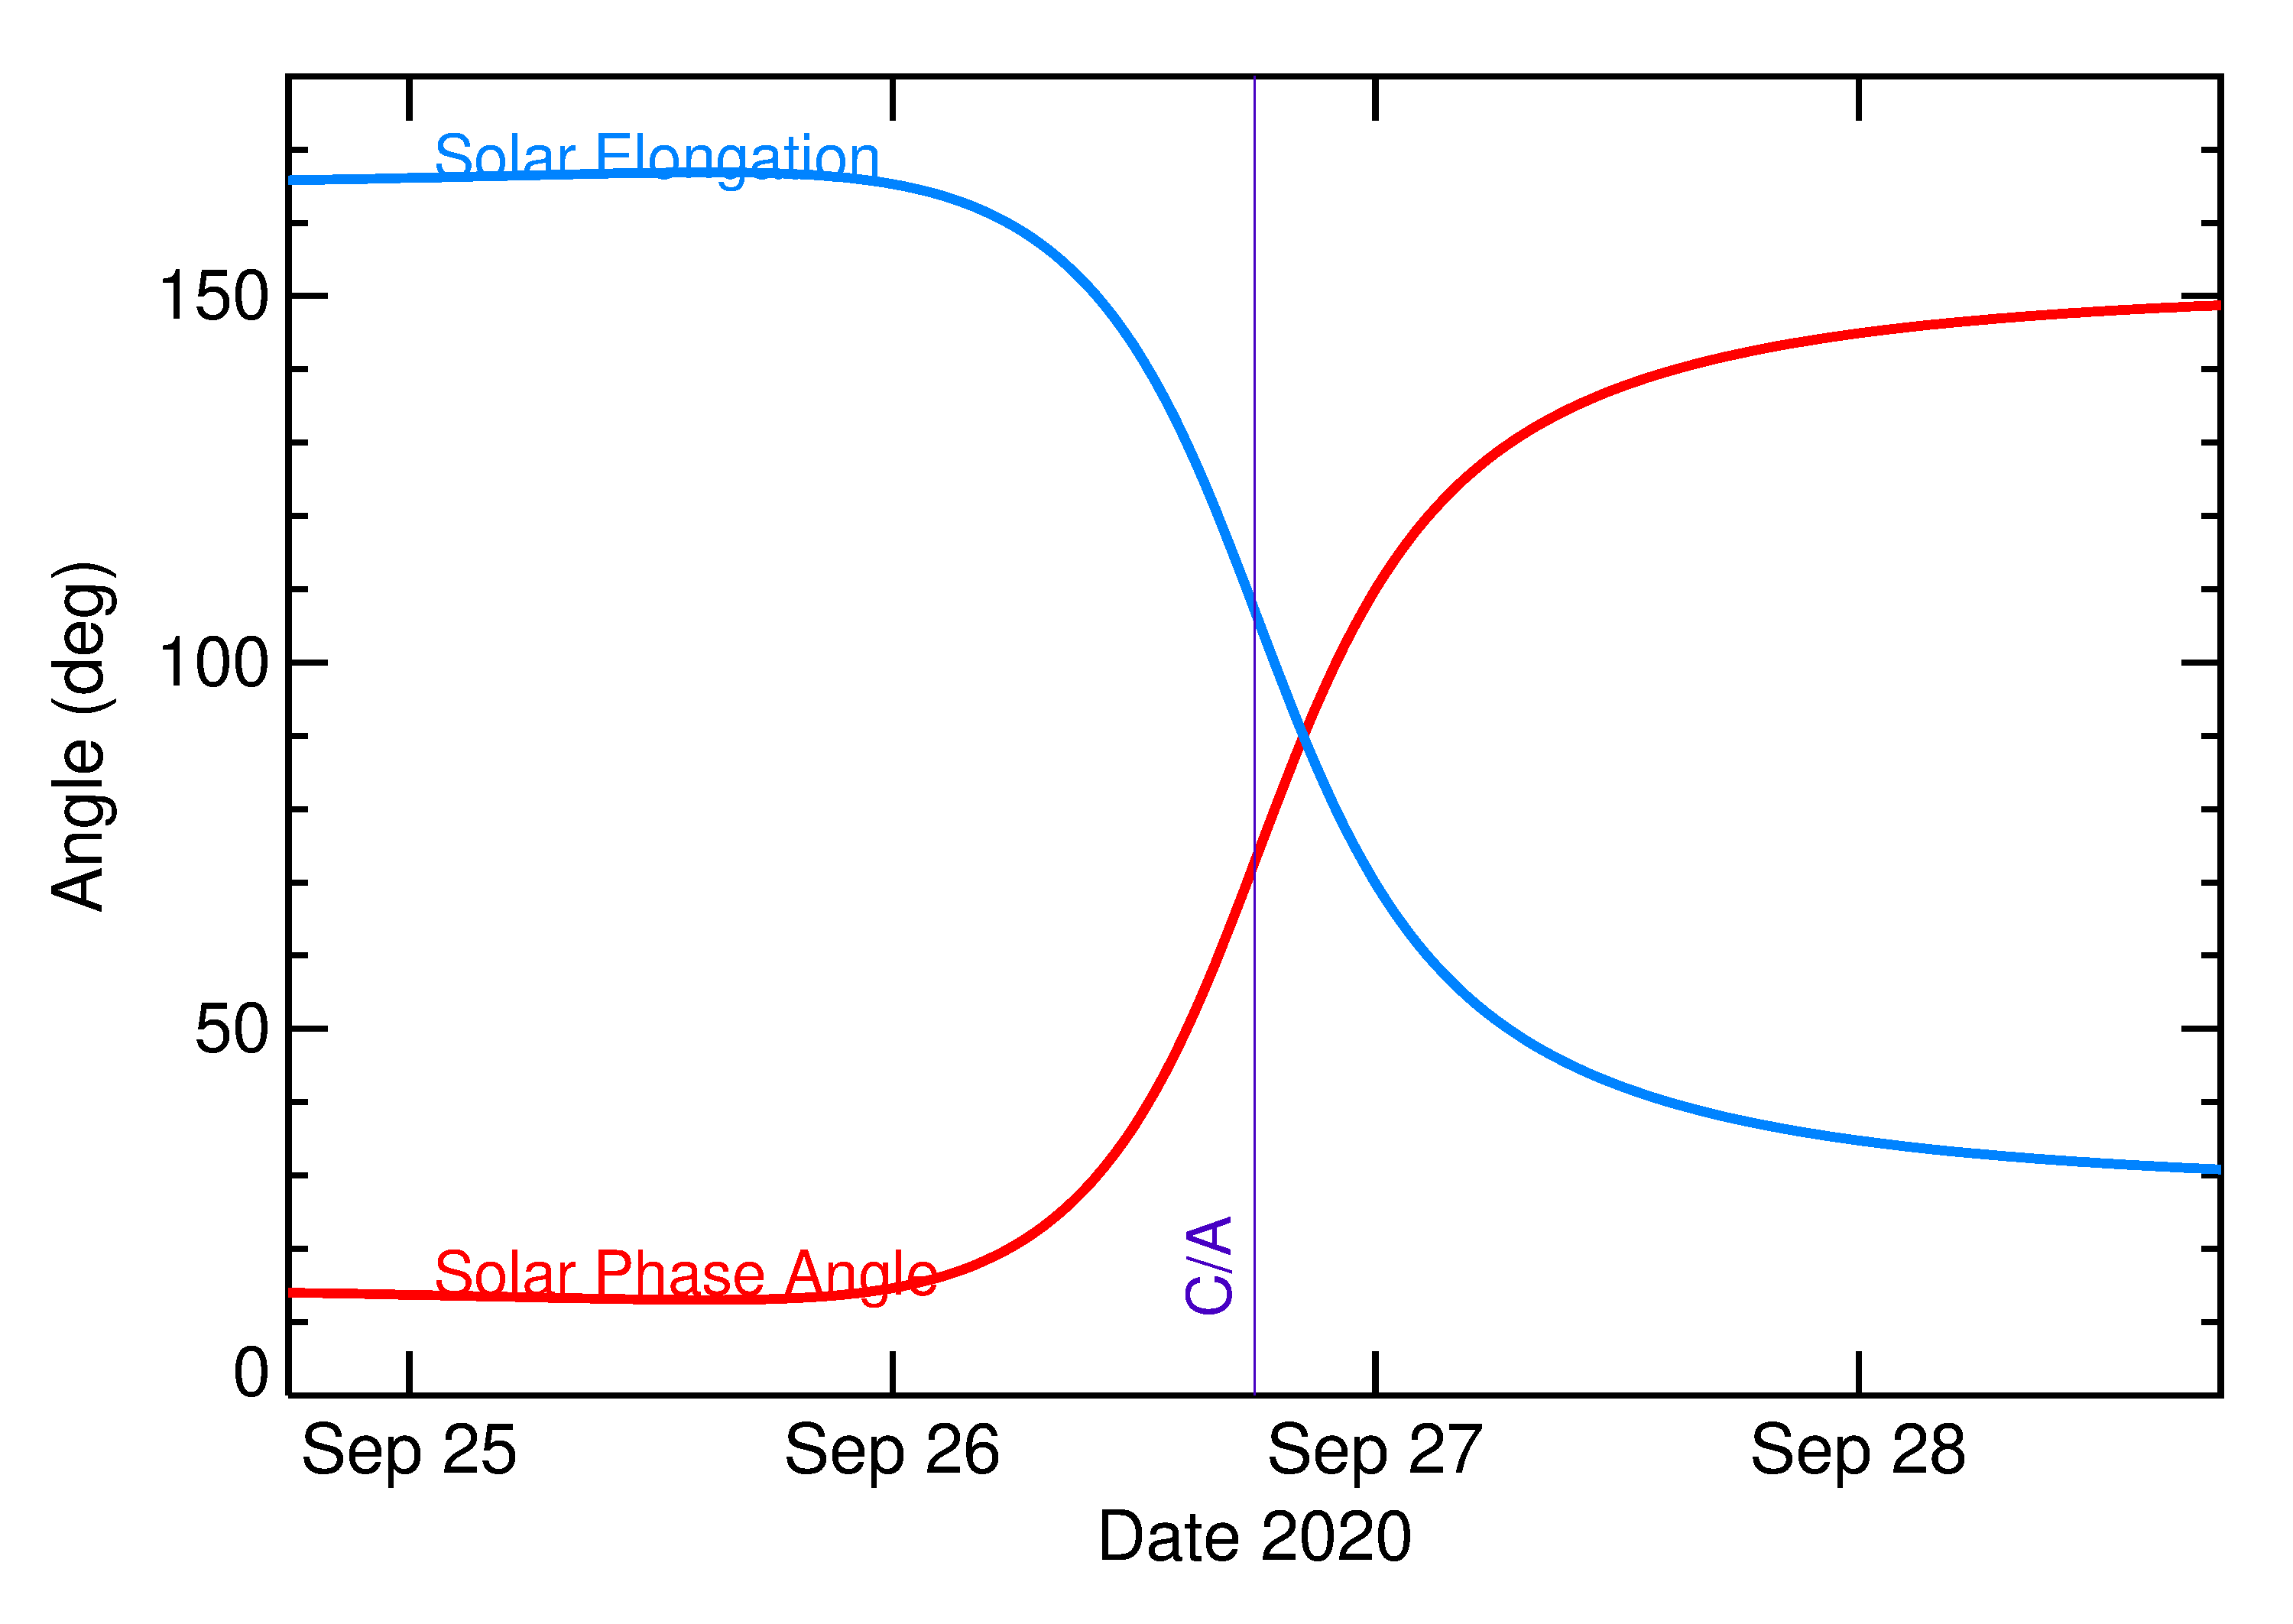 Solar Elongation and Solar Phase Angle of 2020 SQ4 in the days around closest approach